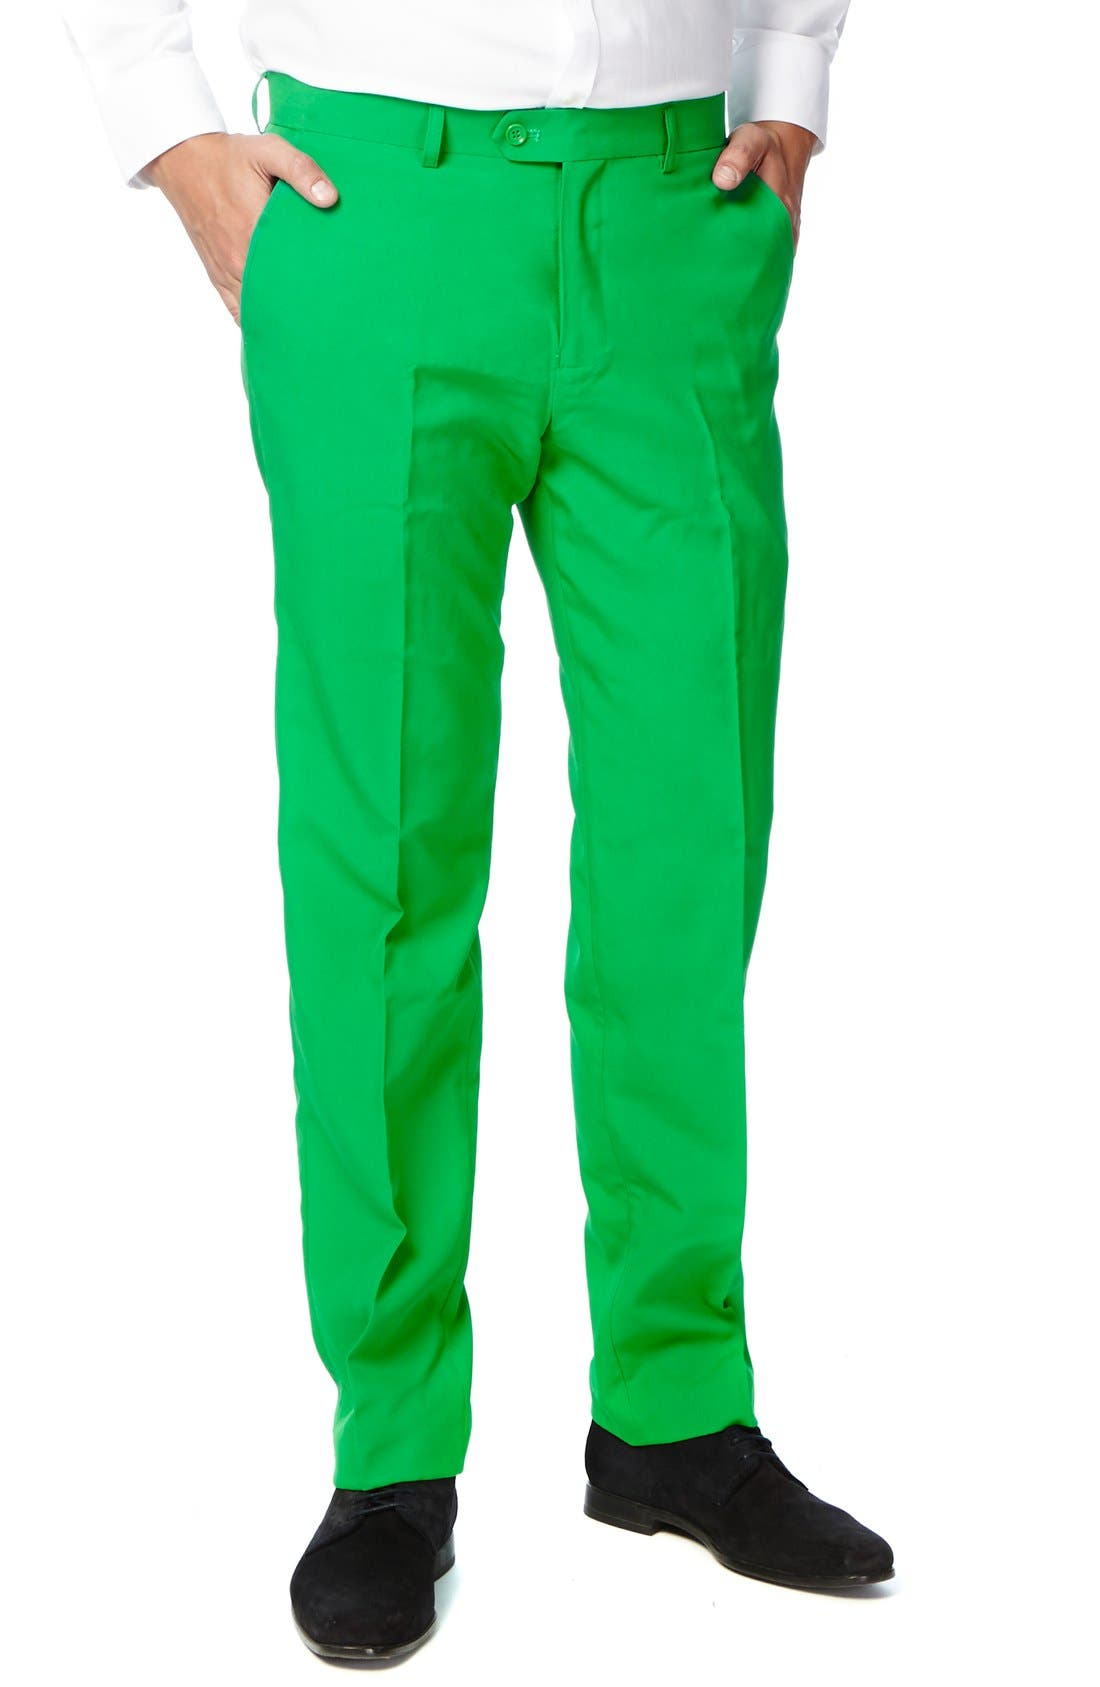 'Evergreen' Trim Fit Suit with Tie,                             Alternate thumbnail 3, color,                             300